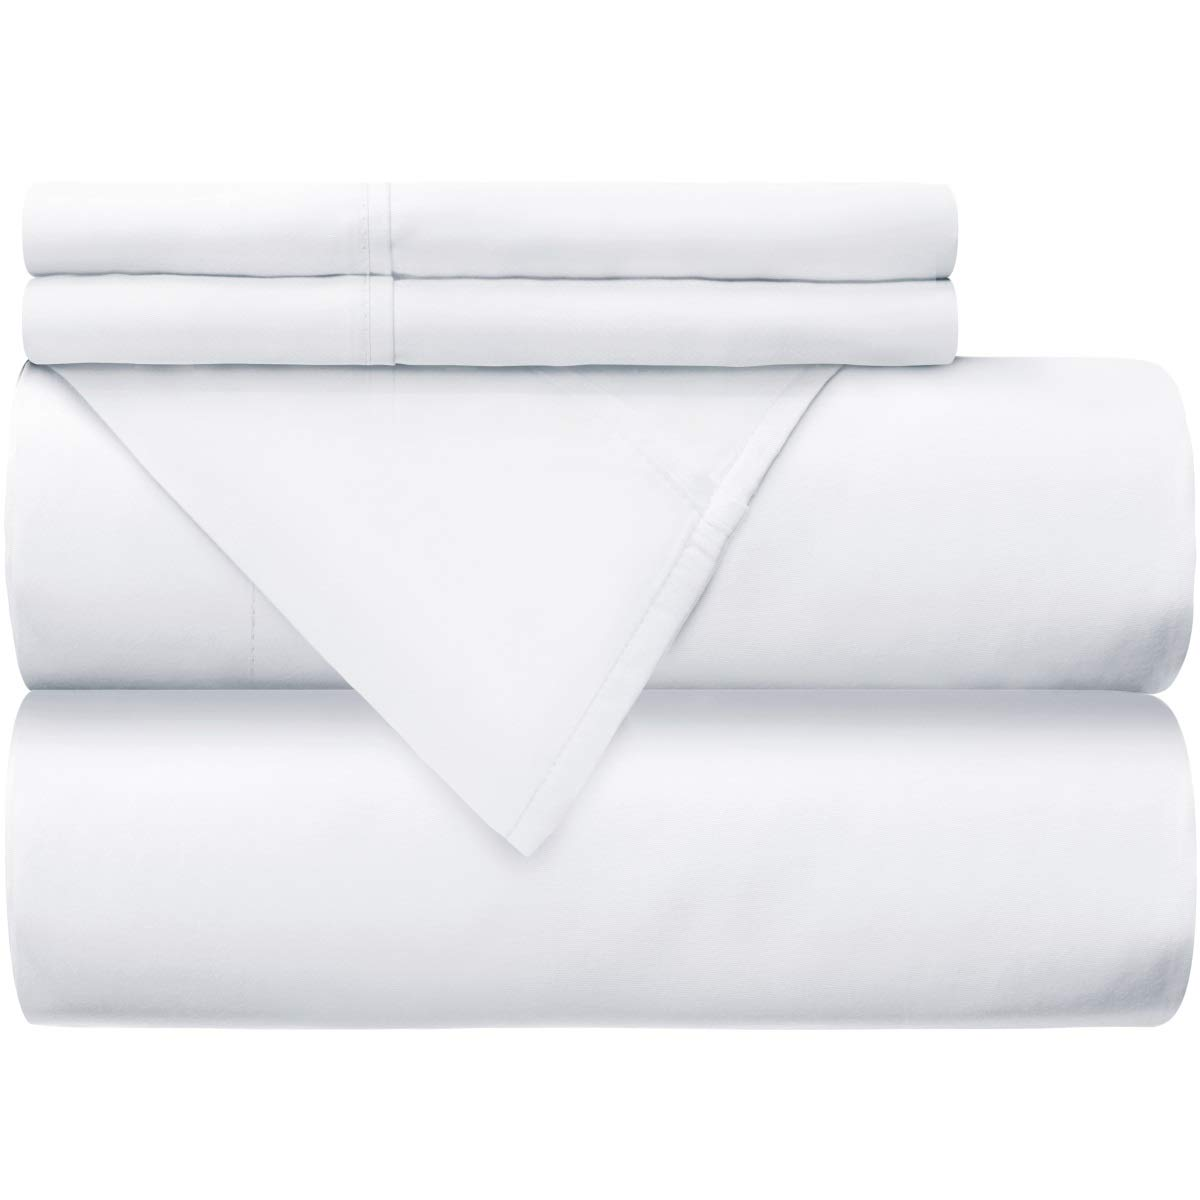 Mellanni 100% Cotton Bed Sheet Set - 300 Thread Count Percale - Deep Pocket - Quality Luxury Bedding - 4 Piece (King, White)